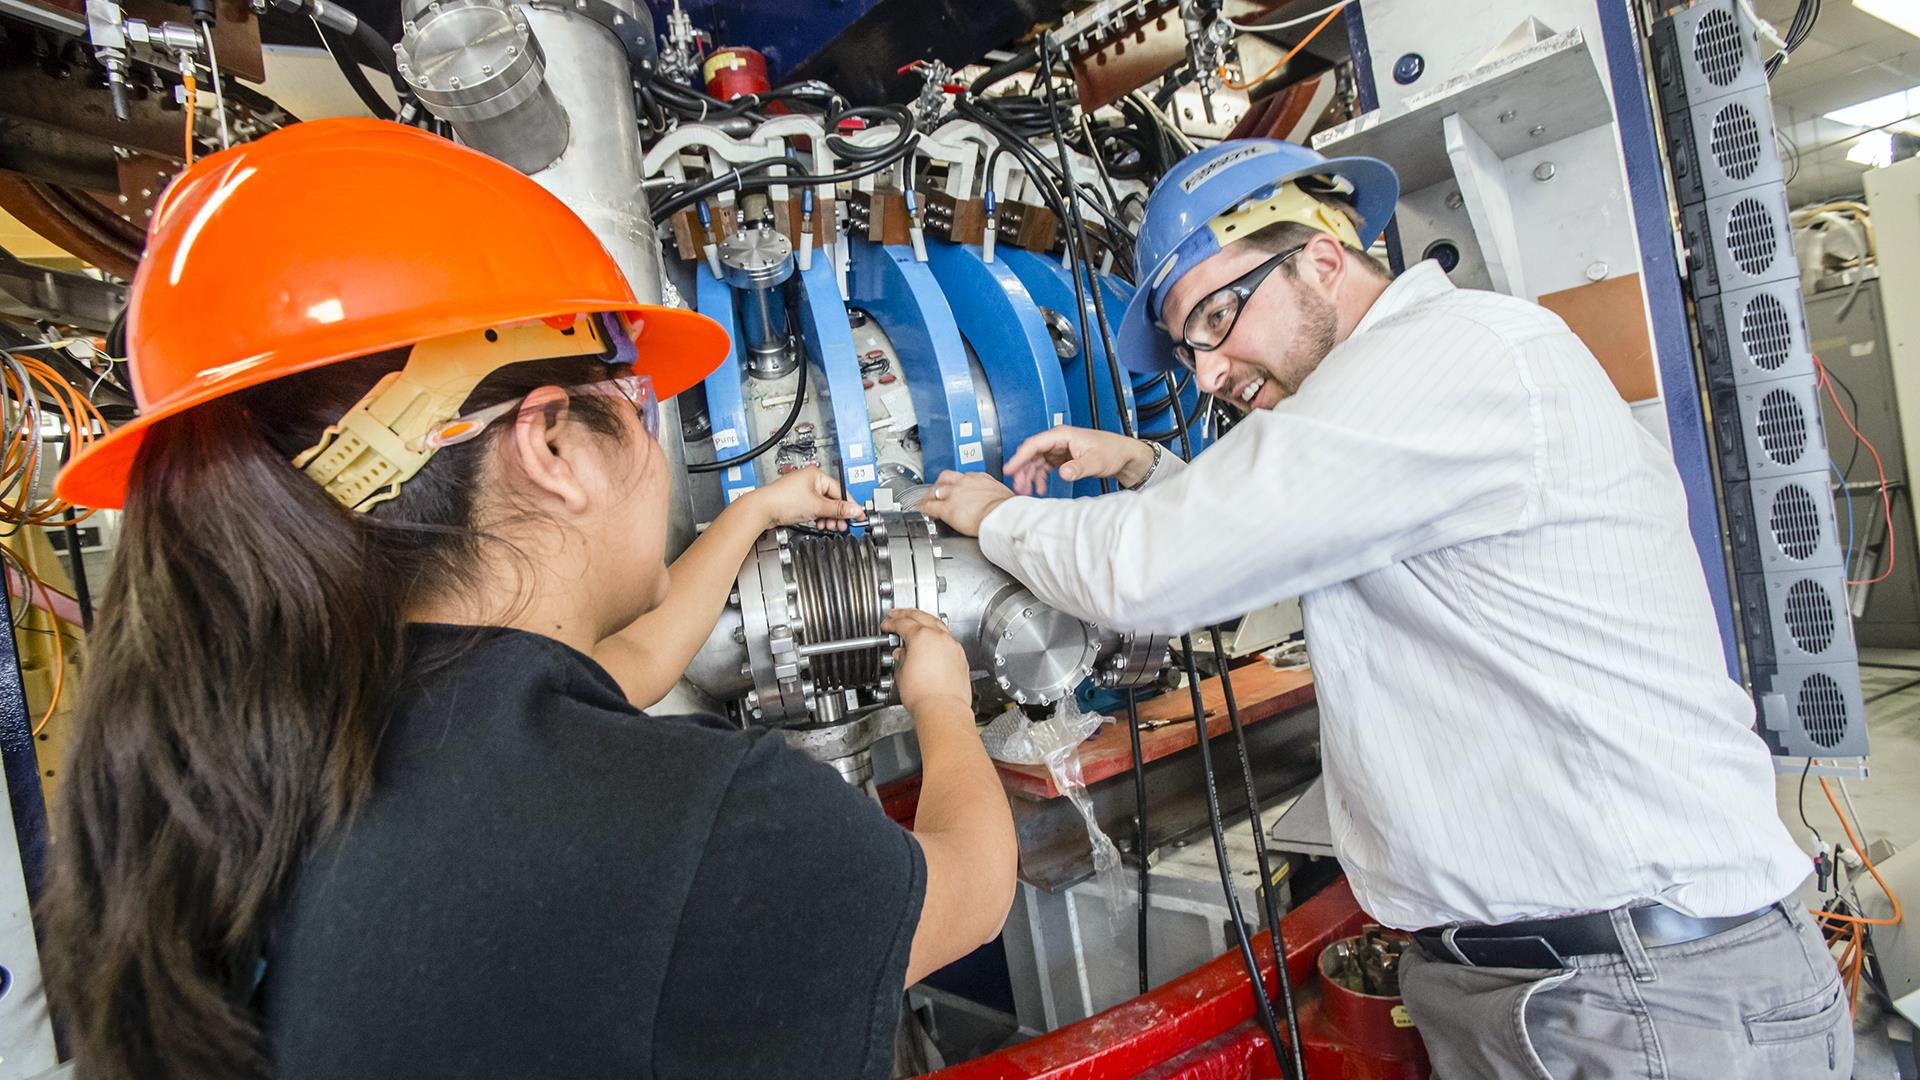 NPRE takes role in DOE-funded partnership to characterize designs for U.S. fusion energy